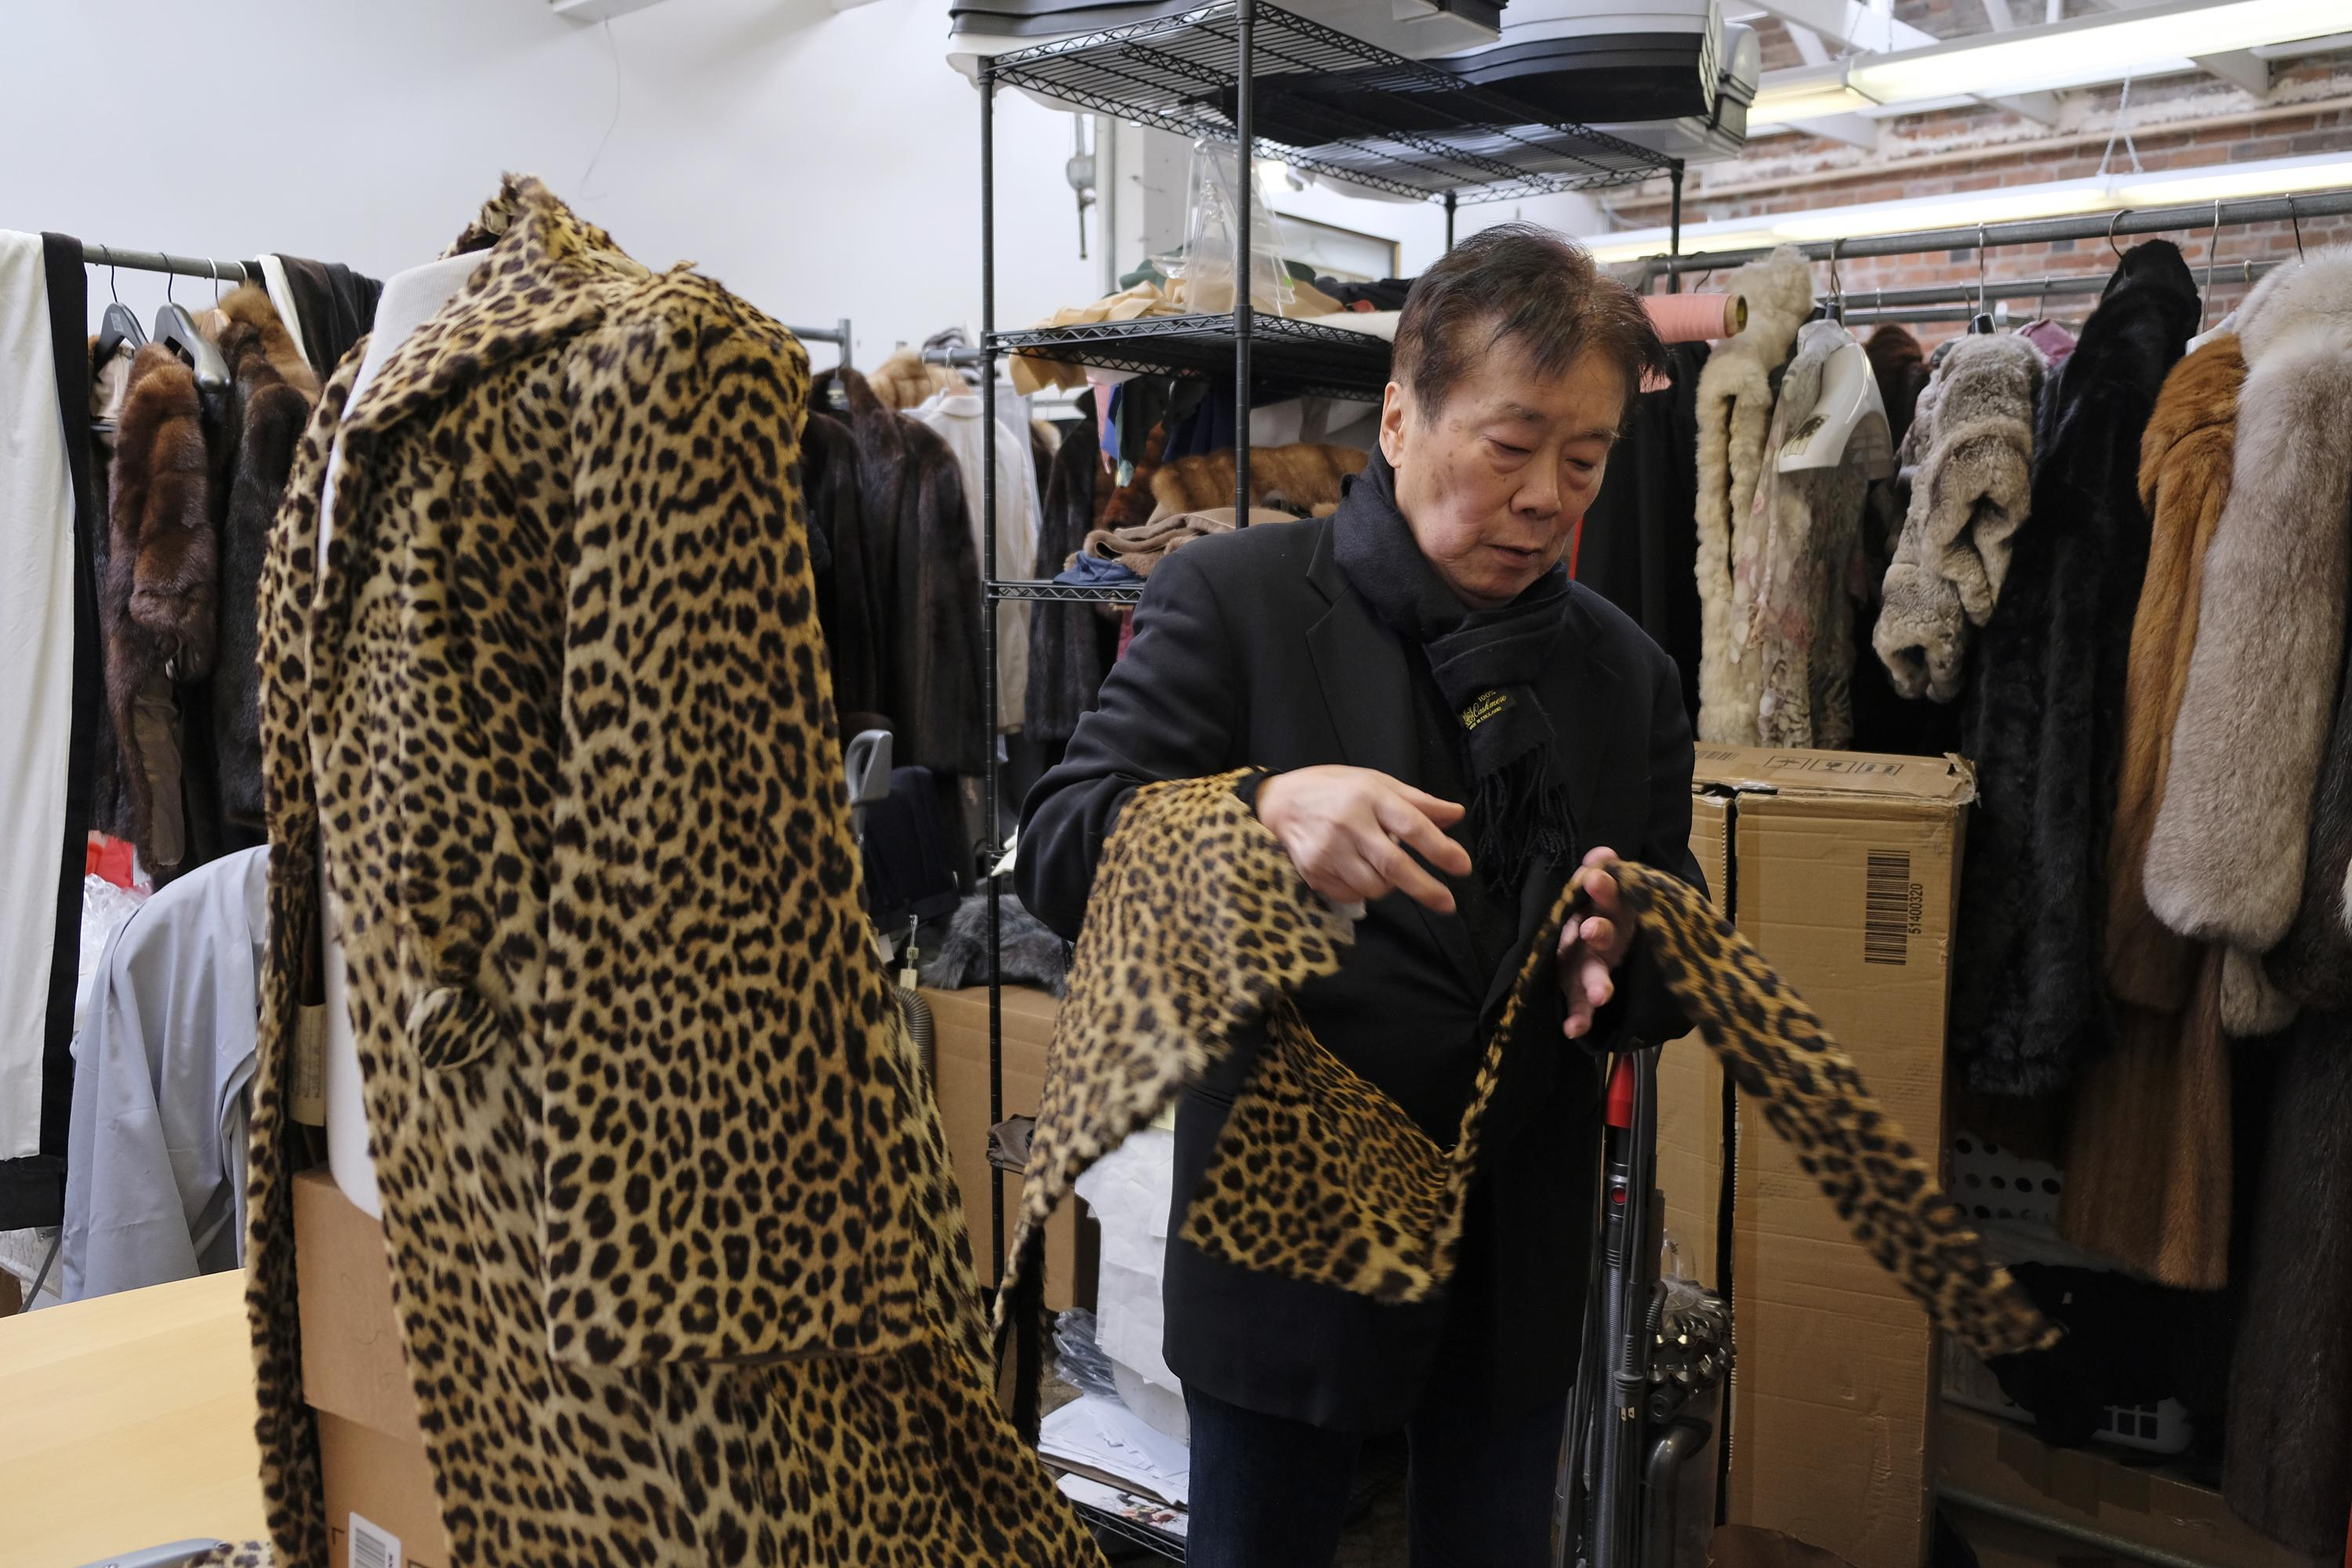 San Francisco Becomes The Largest U.S. City To Ban Fur